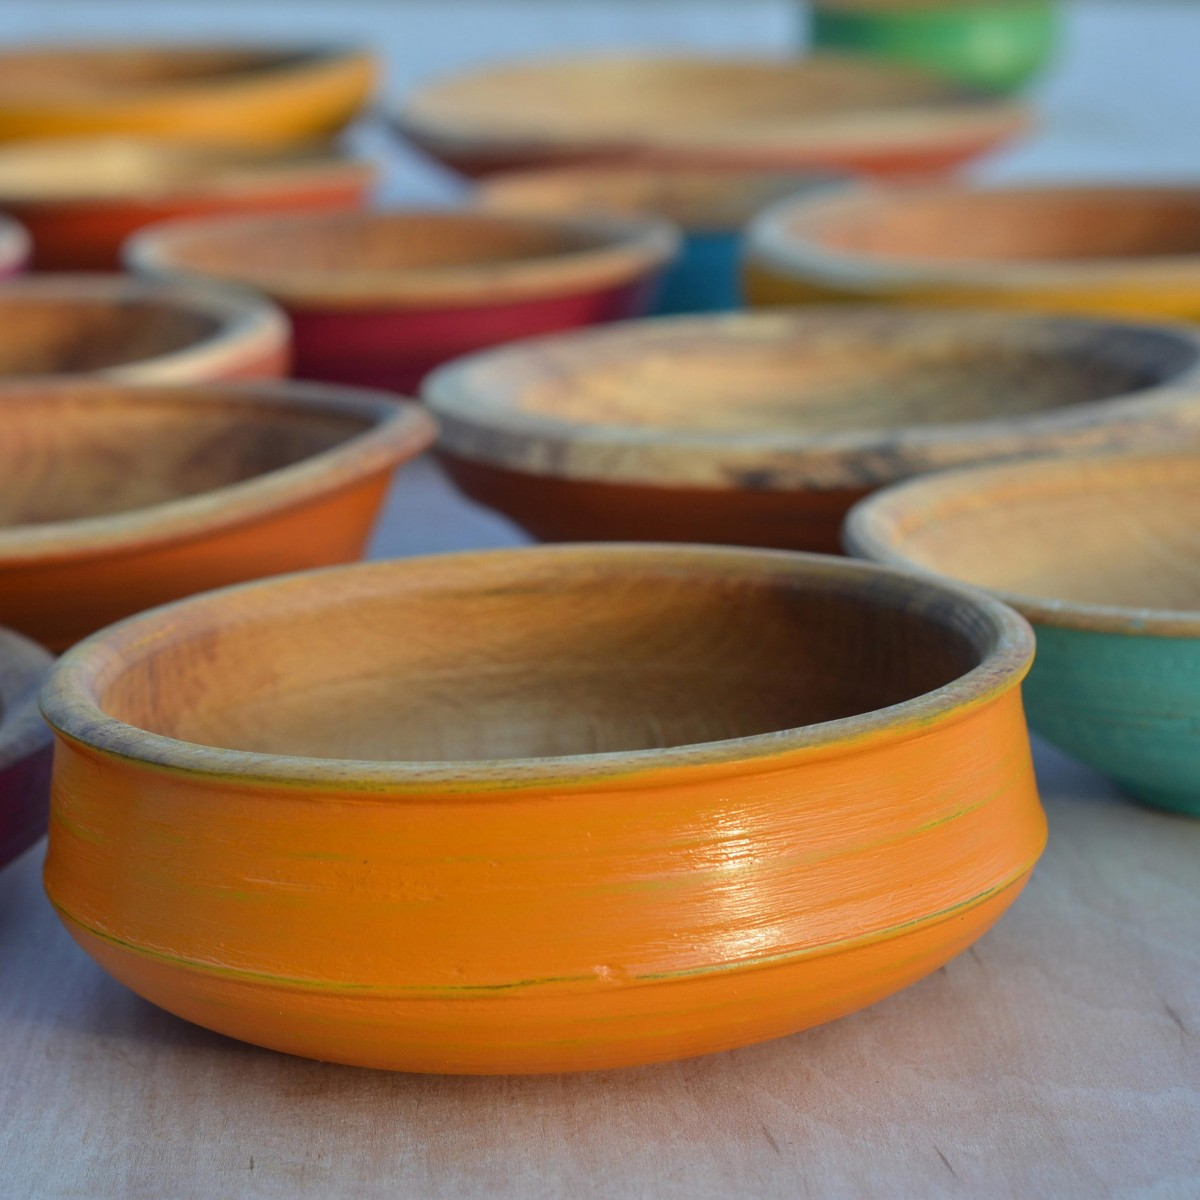 Painted bowls   Indian yellow